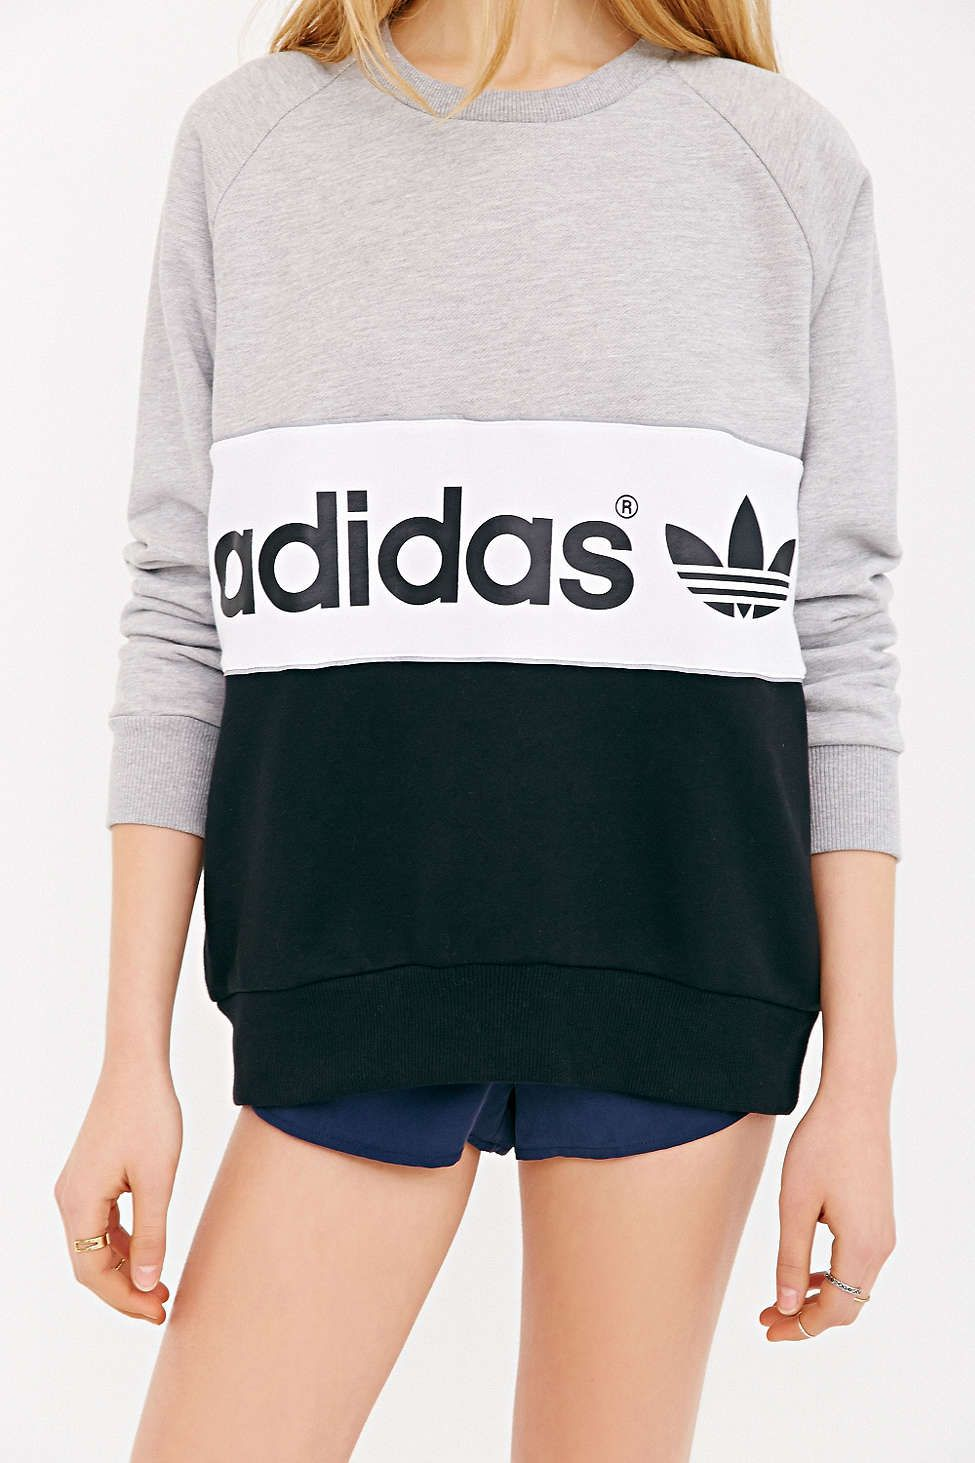 adidasshoes29 su pinterest ropa, buzo y ropa deportiva